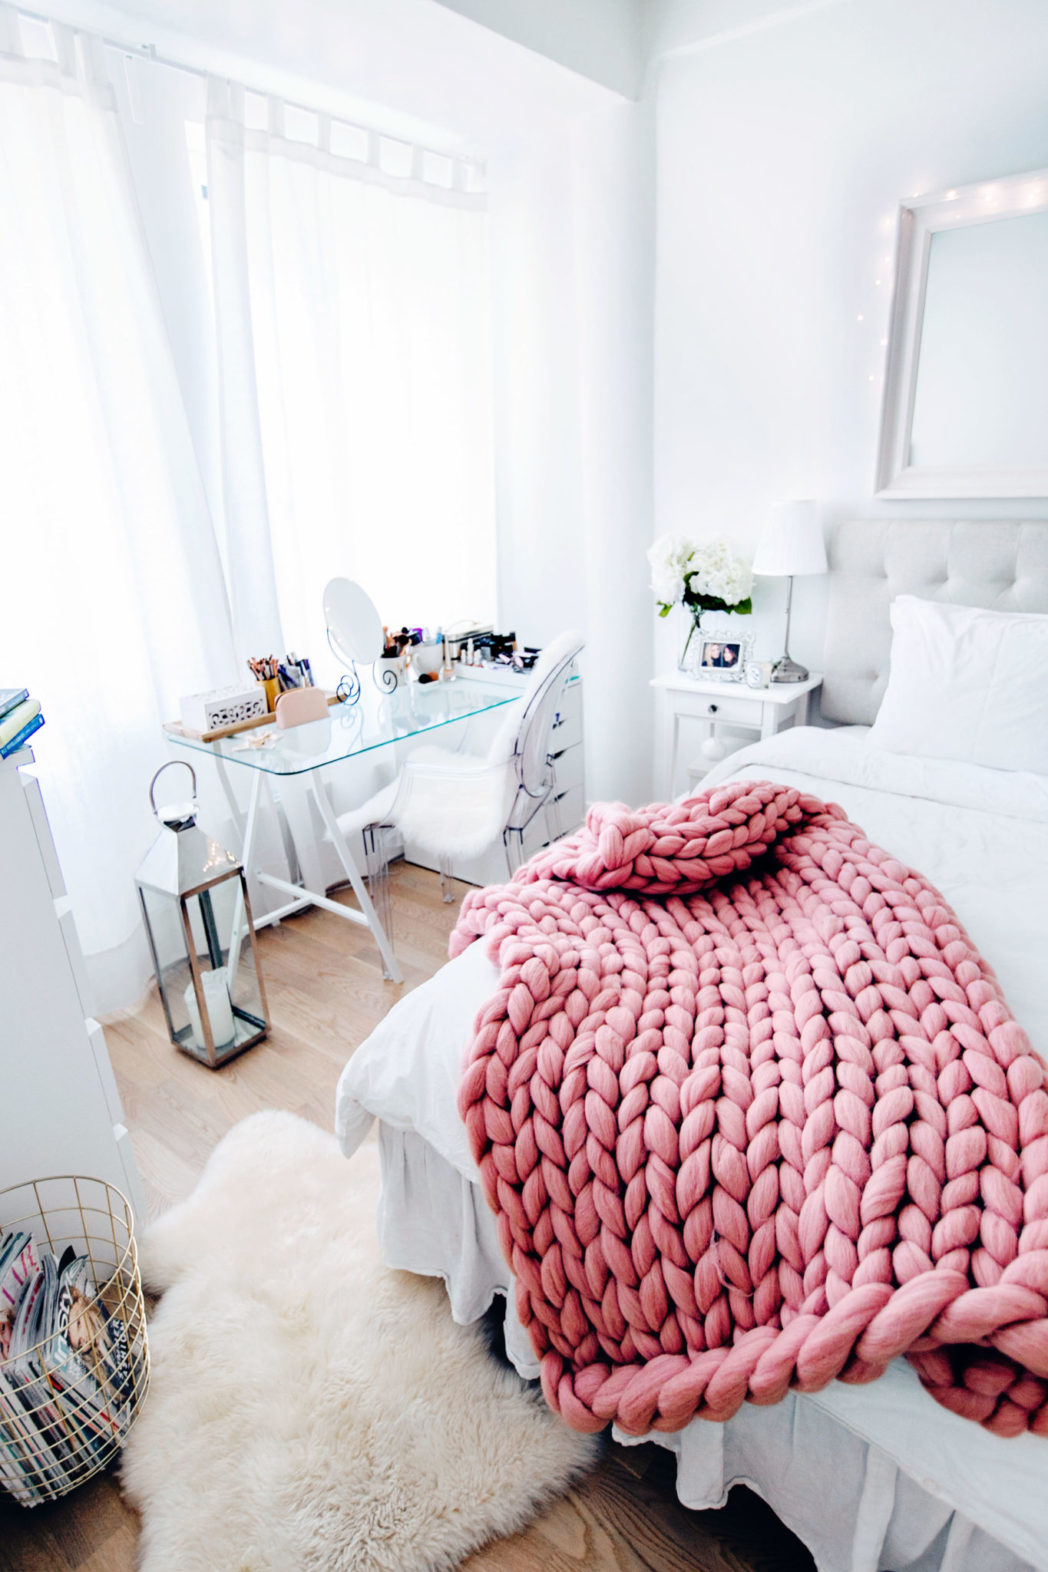 The Ultimate Guide To Buying A Chunky Knit Blanket - Where To Find The Best Chunky Knit Blankets | Pink chunky throw